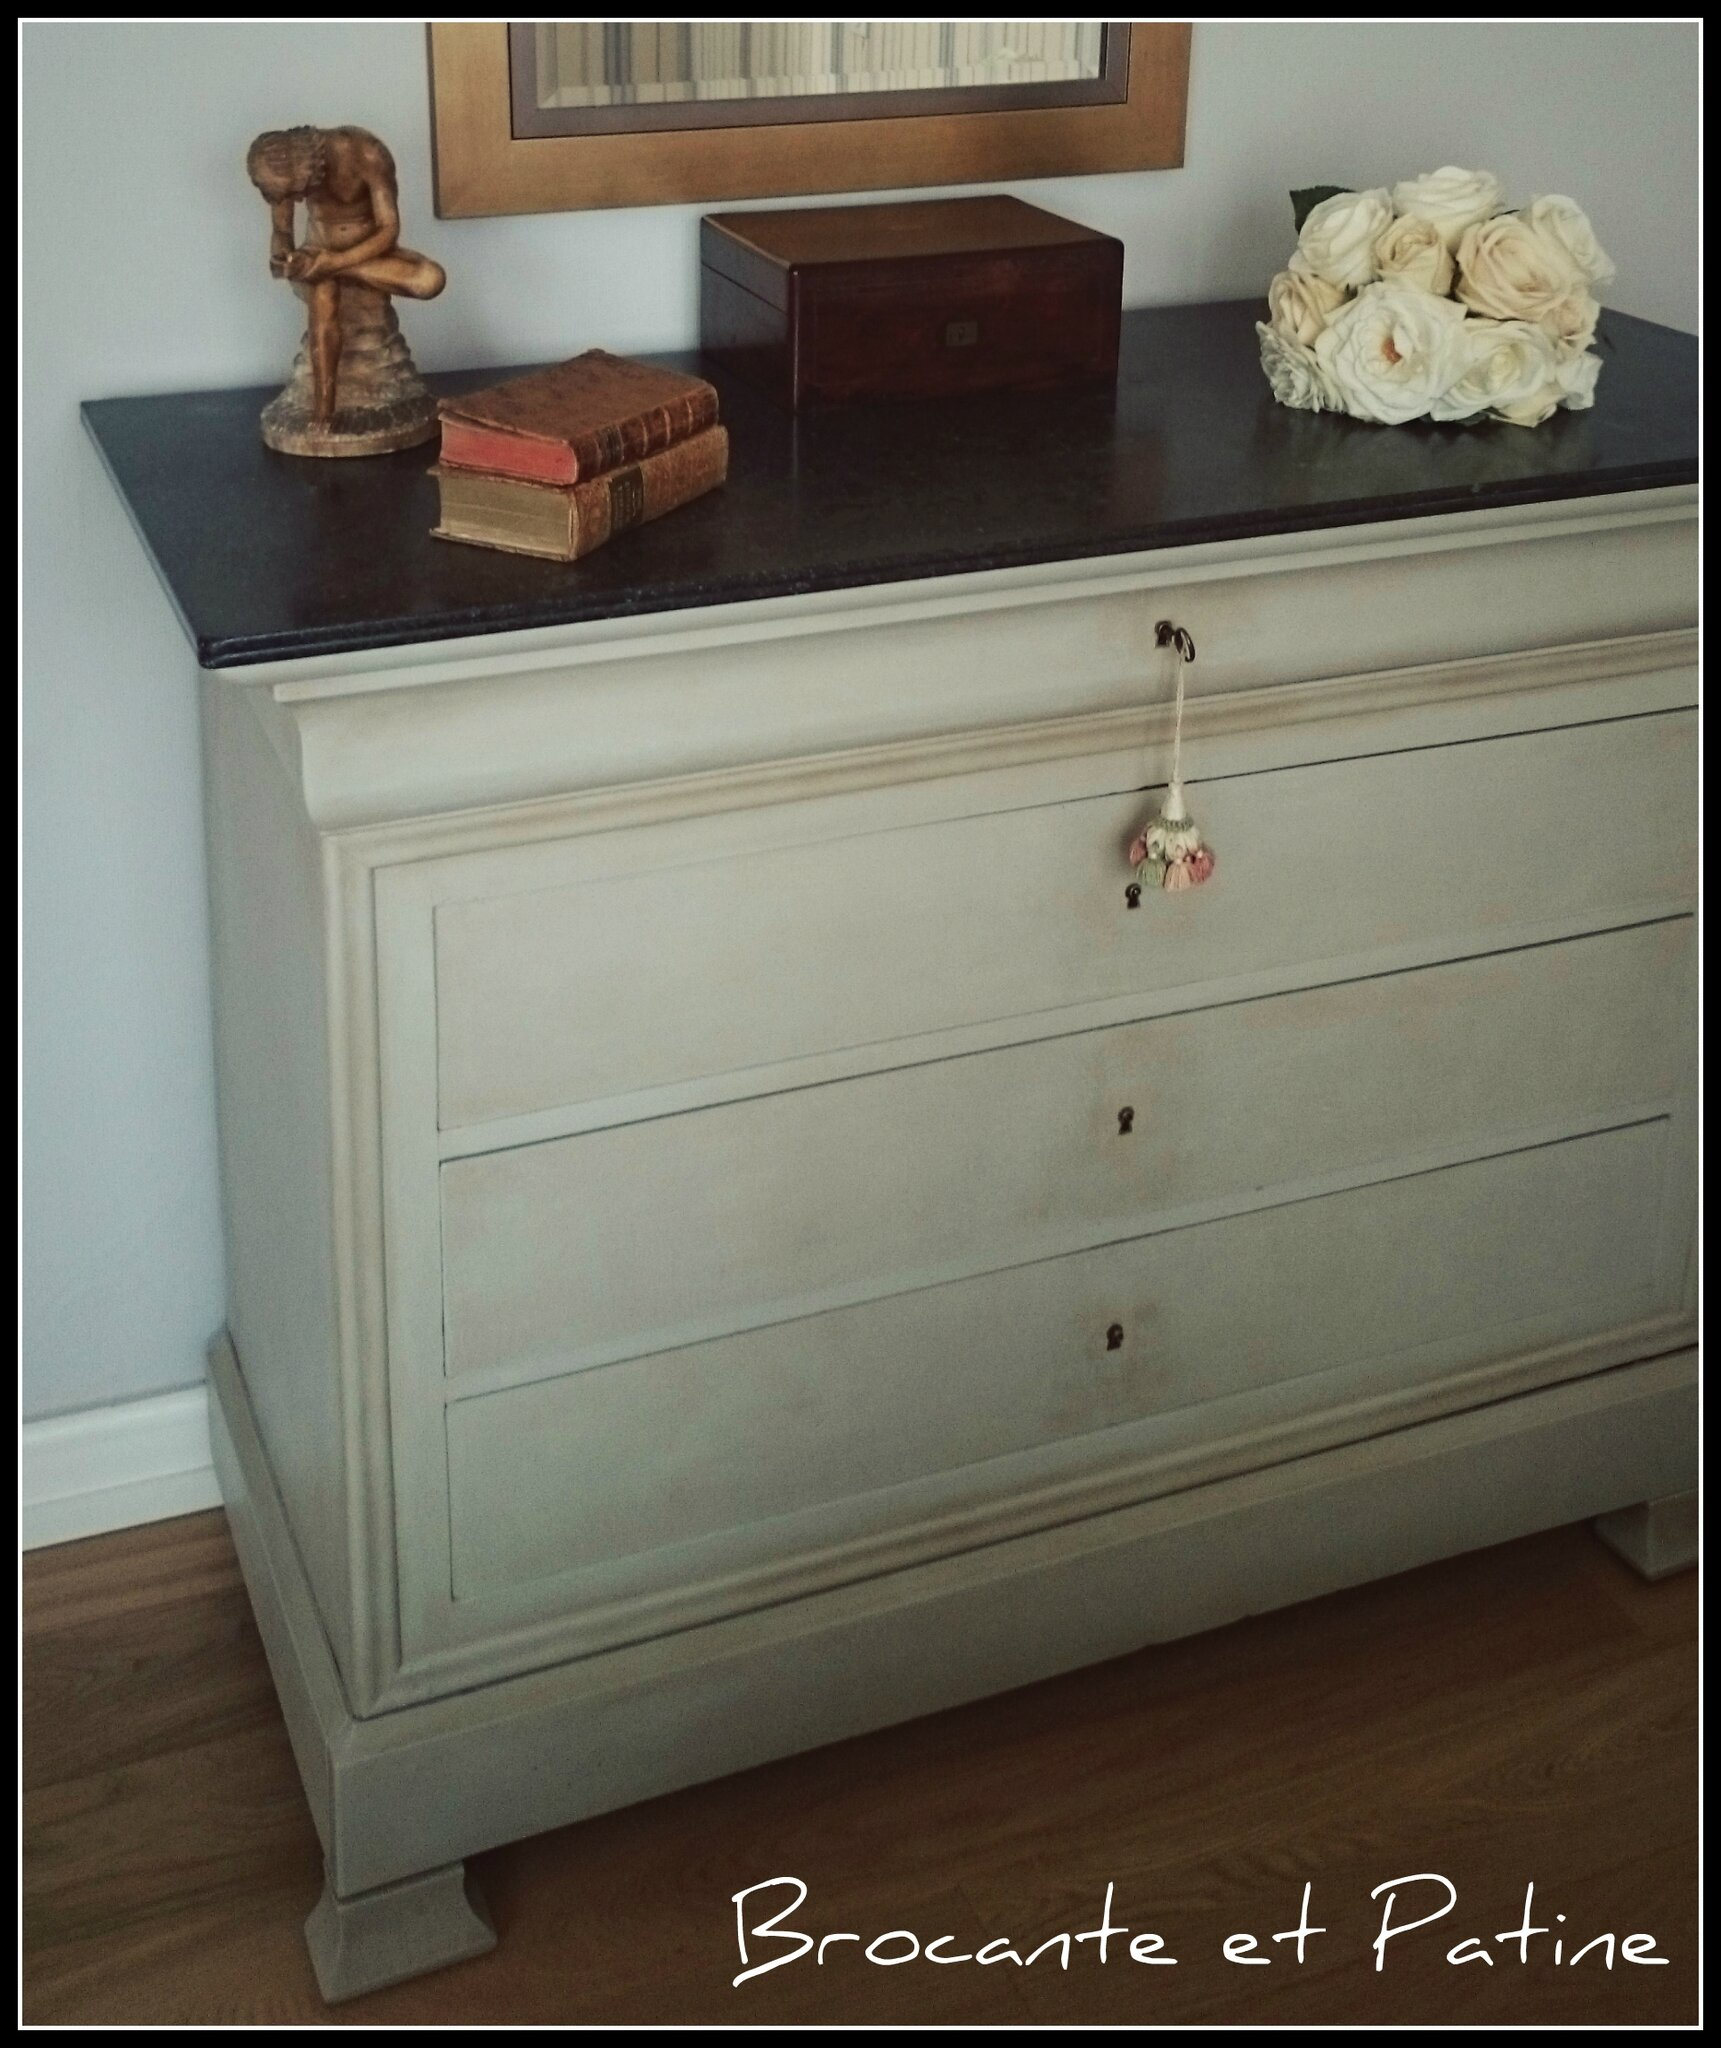 Commode odile brocante et patine - Commode a peindre ...